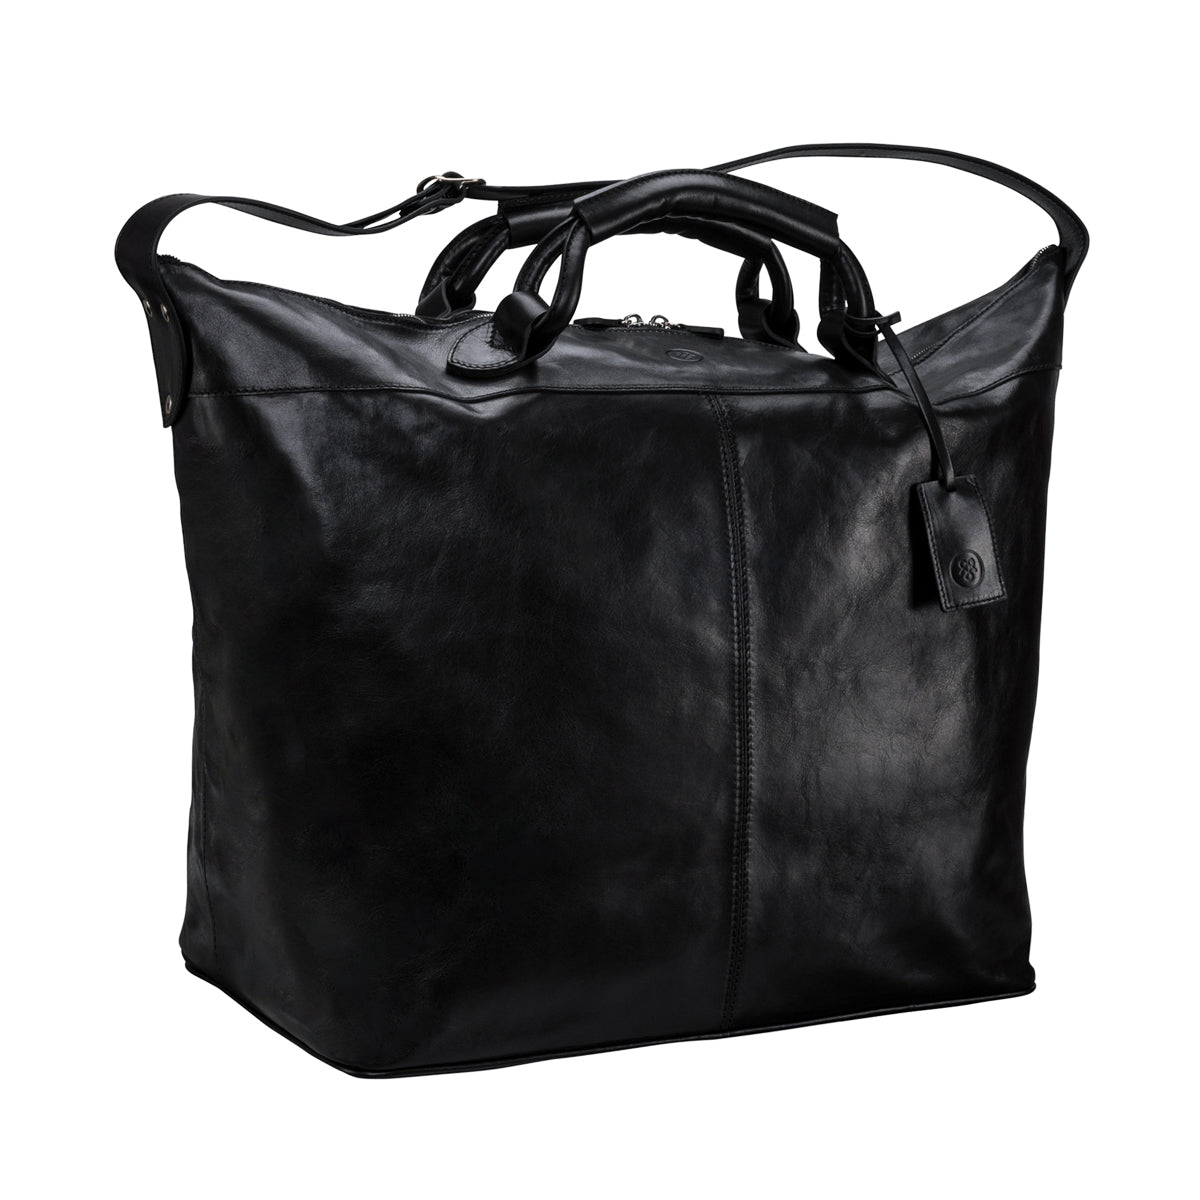 Image 2 of the 'Fabrizio' Black Veg-Tanned Leather Holdall